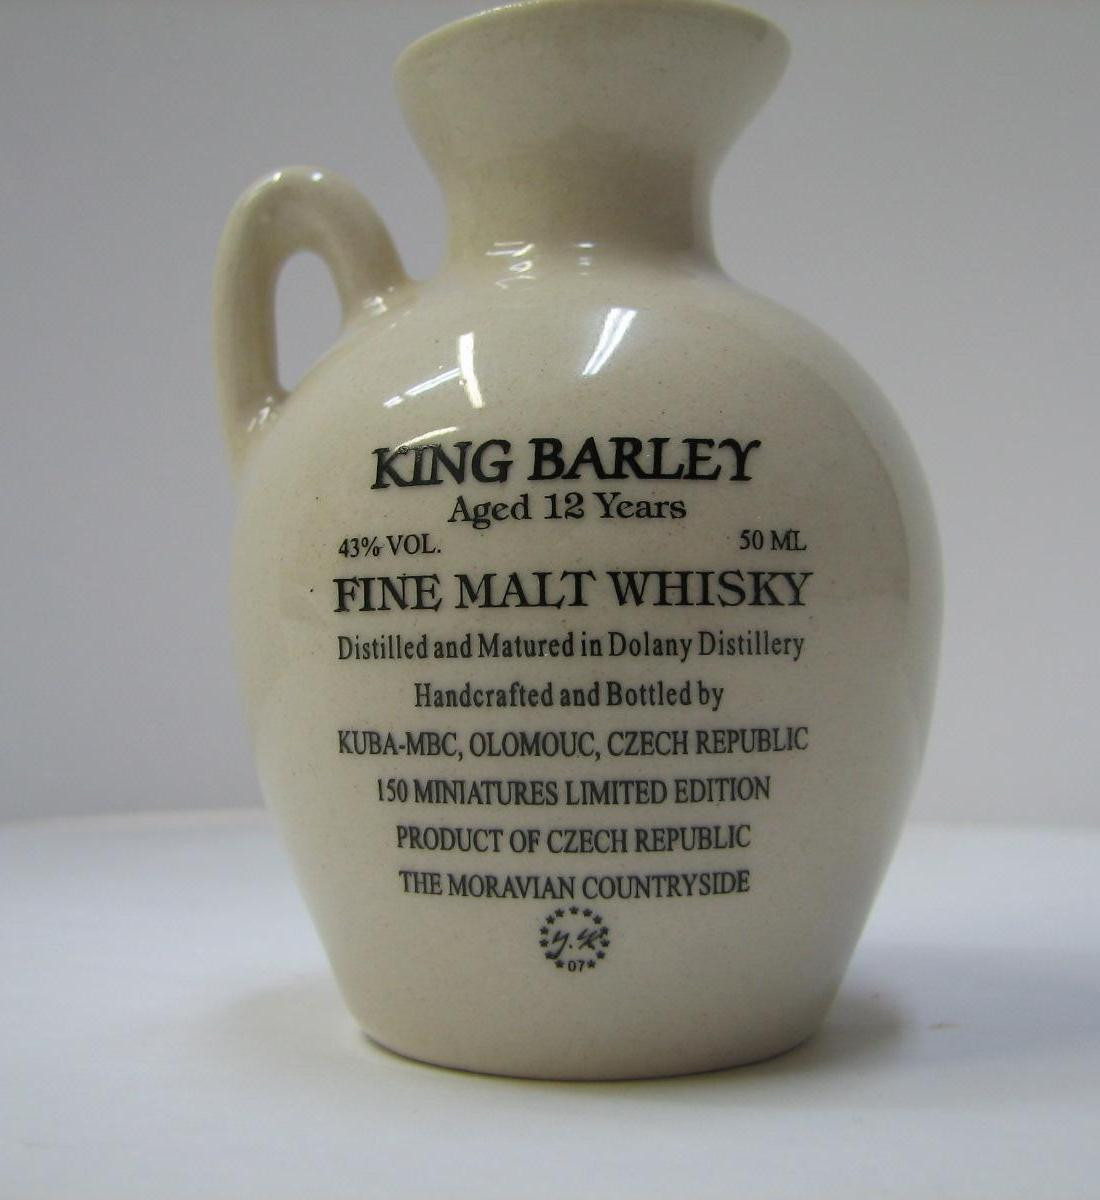 2007 Midwest Miniature Bottle Club Jug – Back side